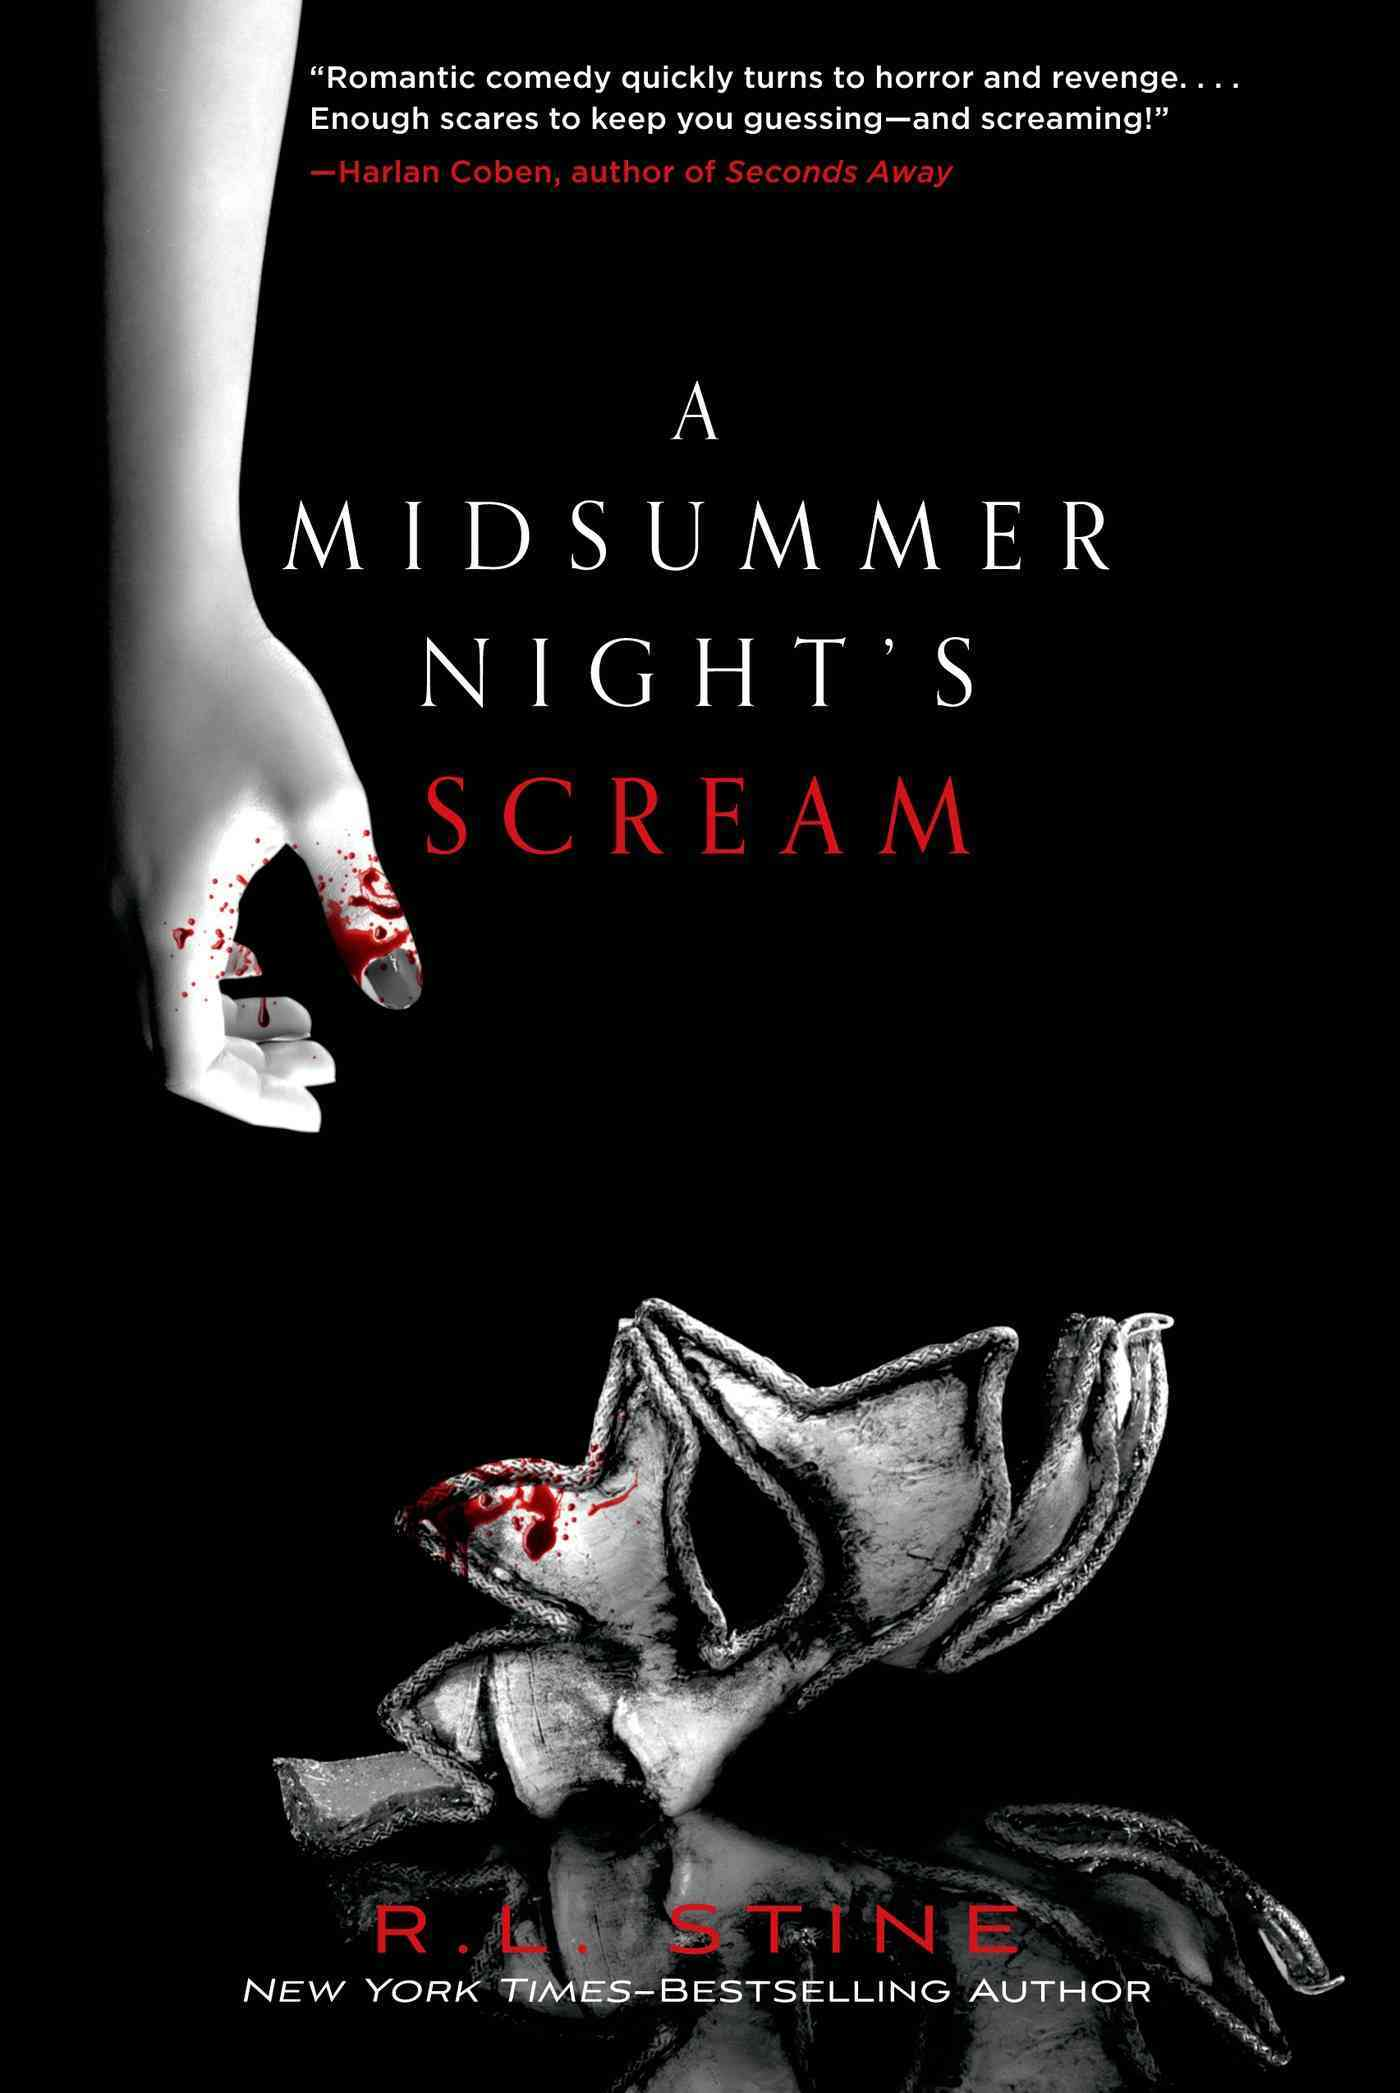 A Midsummer Night's Scream By Stine, R. L.